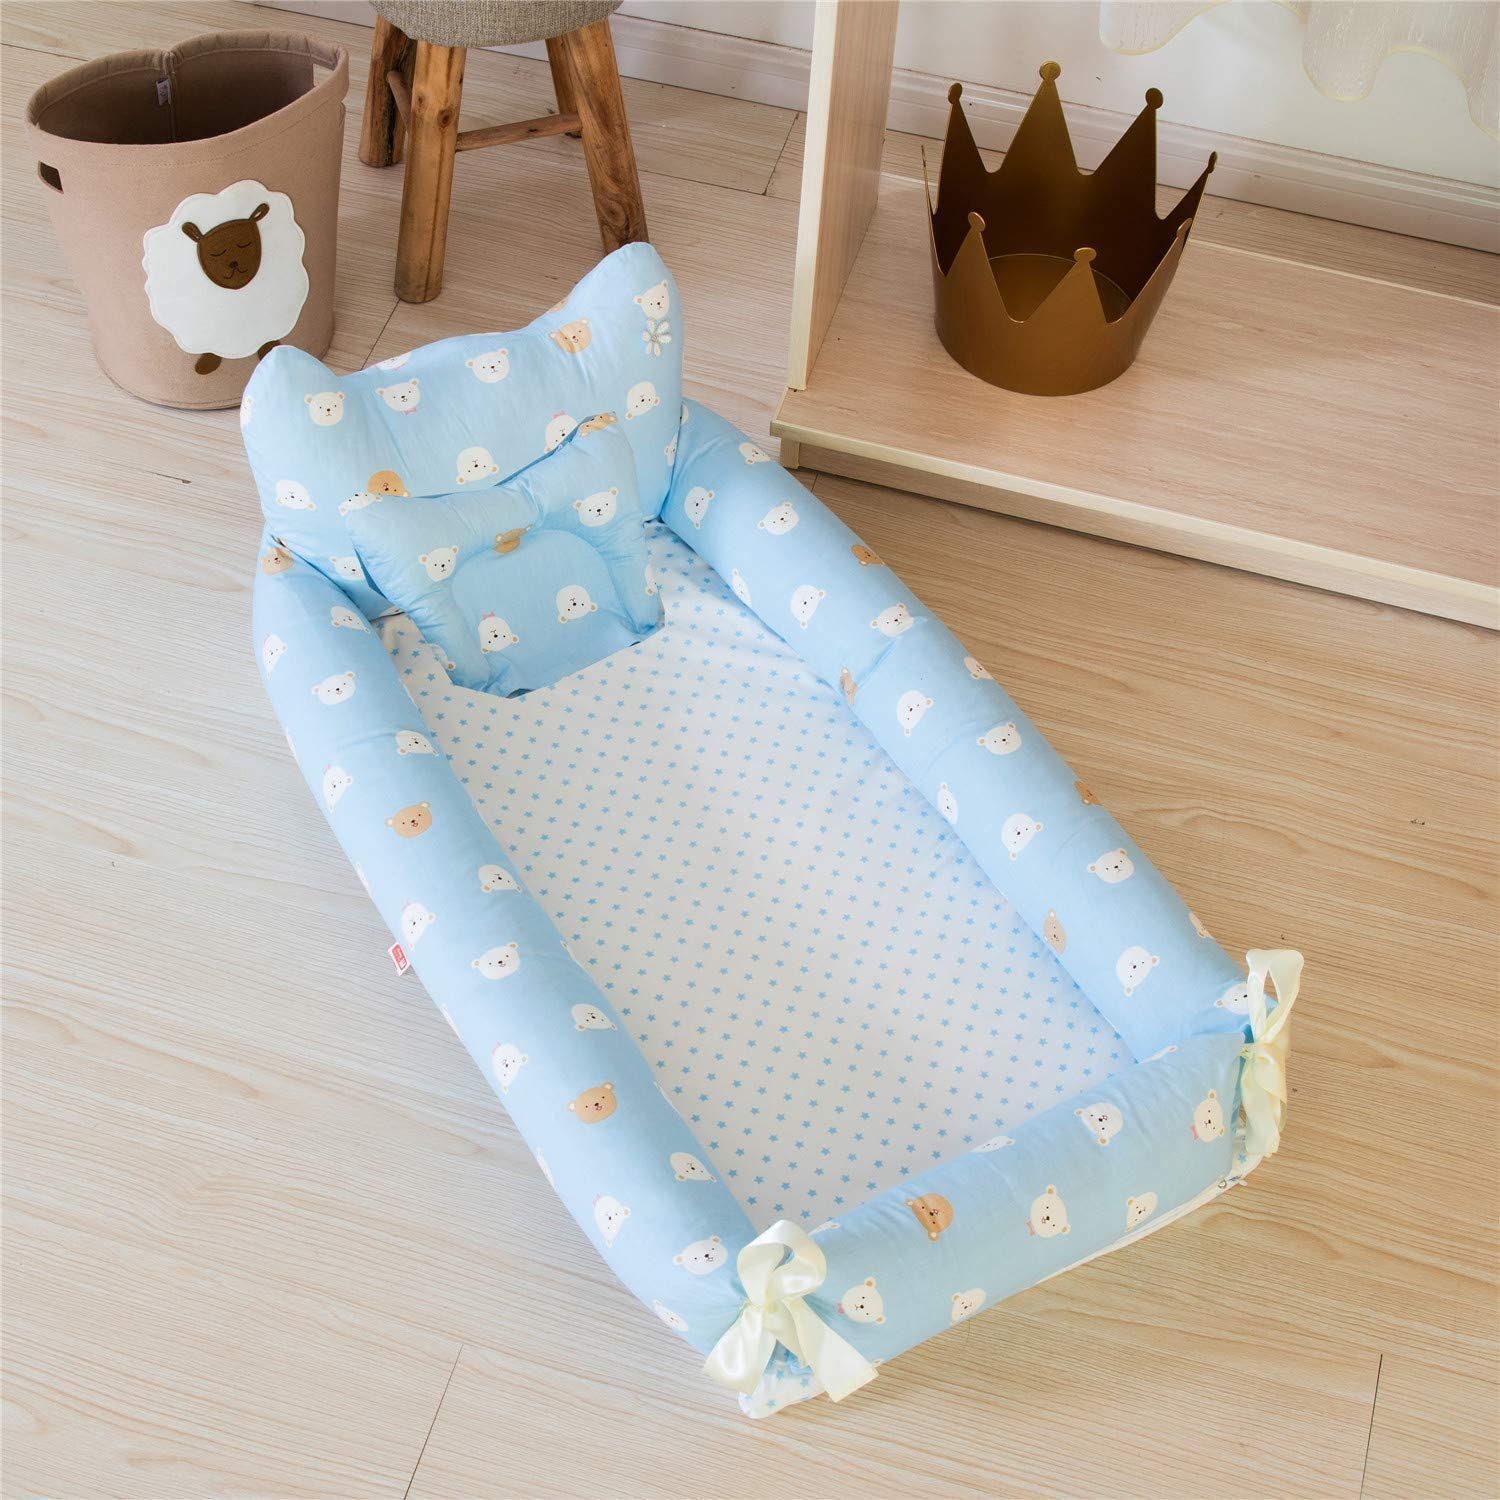 Ustide Newborn Infant Co-Sleeping Portable 100/% Breathable Cotton Baby Bassinet Set 2 Pieces